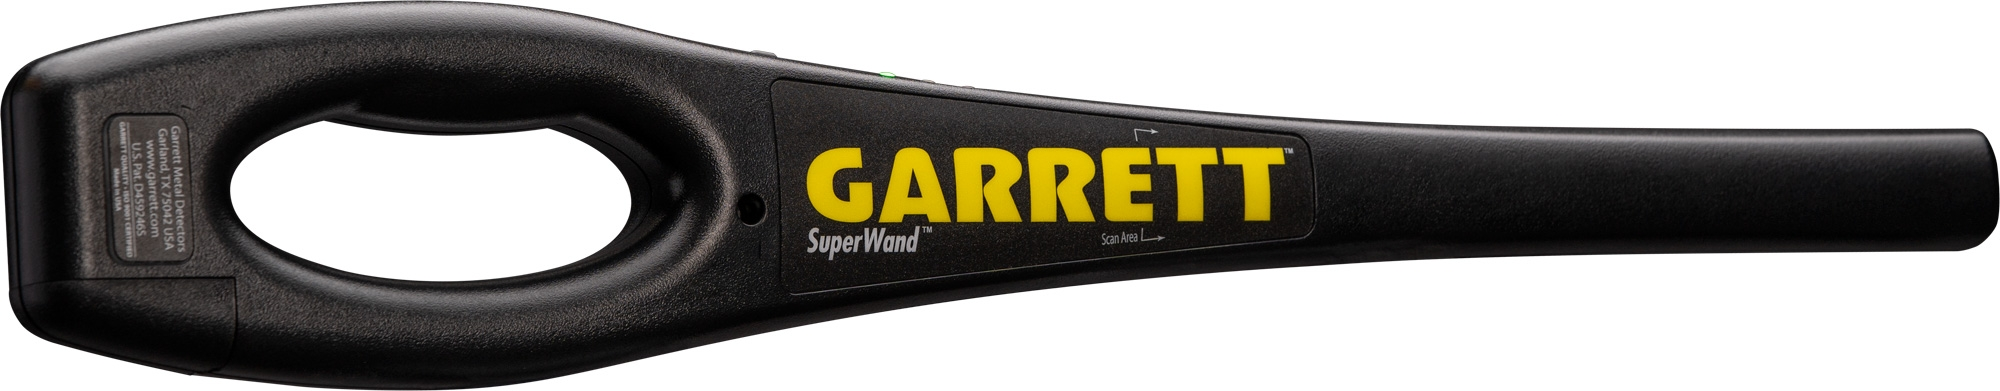 detector de metal superwand garrett